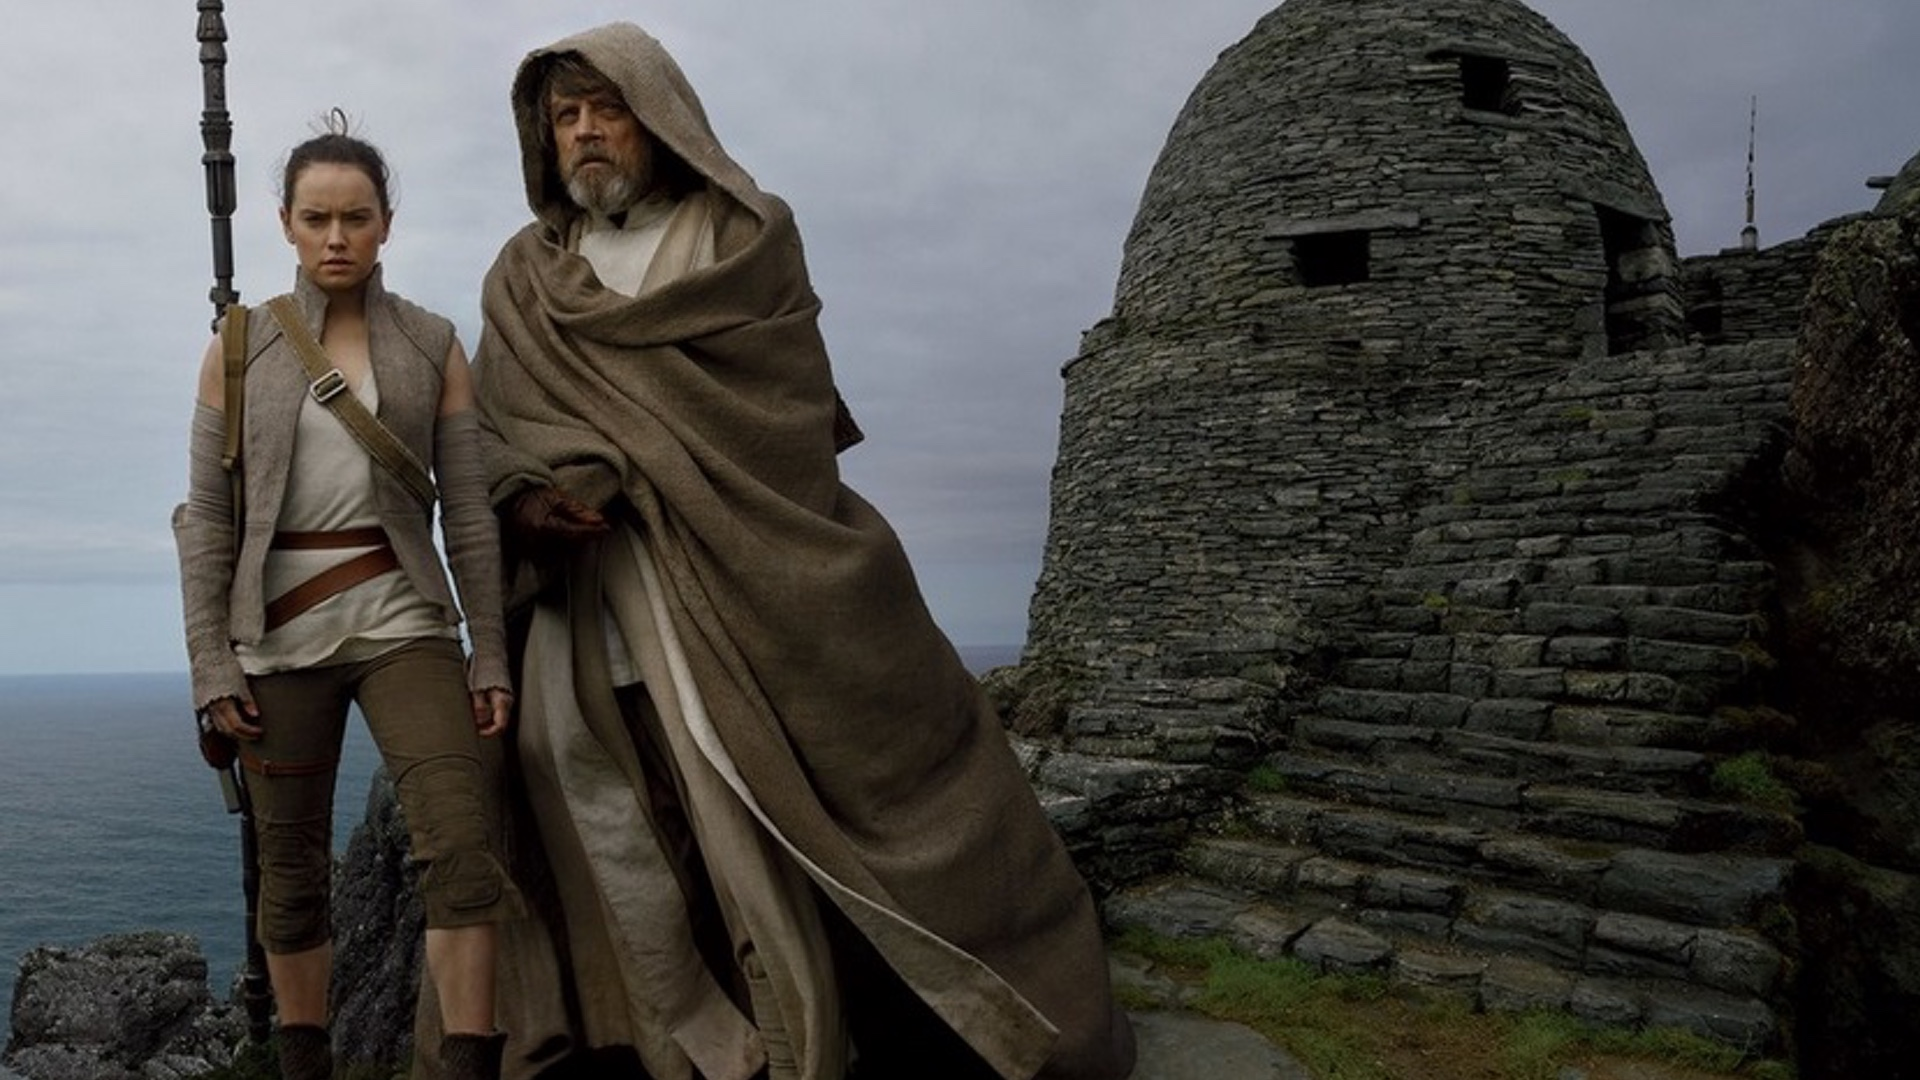 mark-hamill-talks-about-his-place-in-star-wars-the-last-jedi-its-not-about-luke-anymore-social.jpg